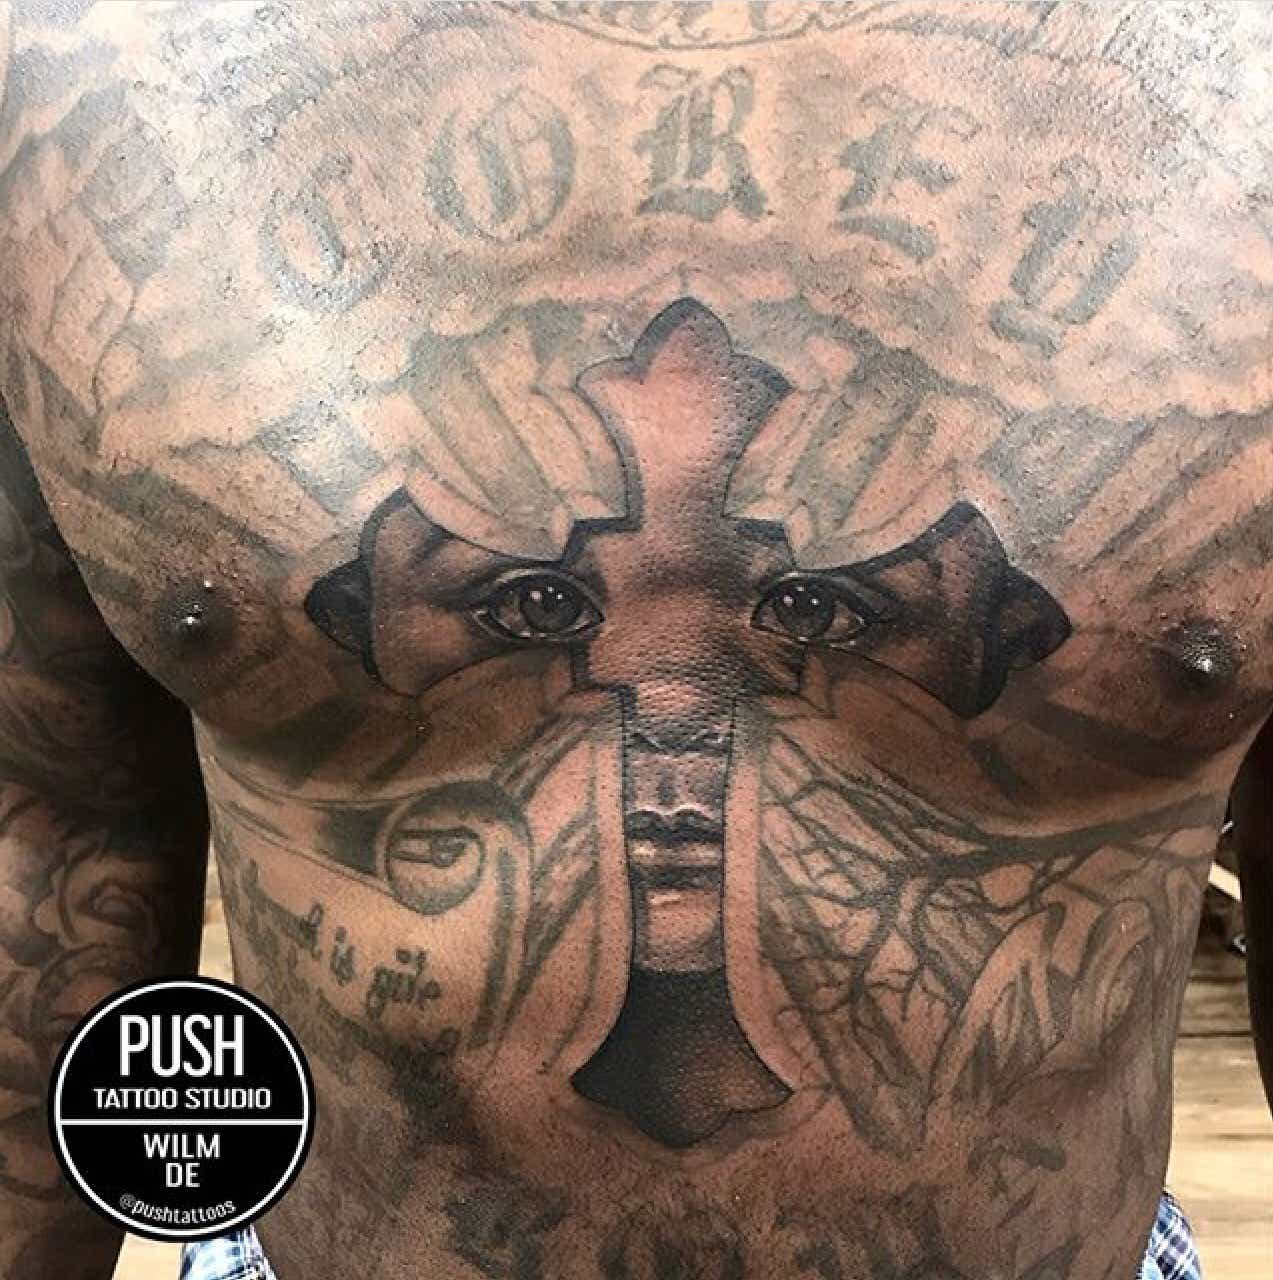 Get to know: Local tattoo artists on reality show